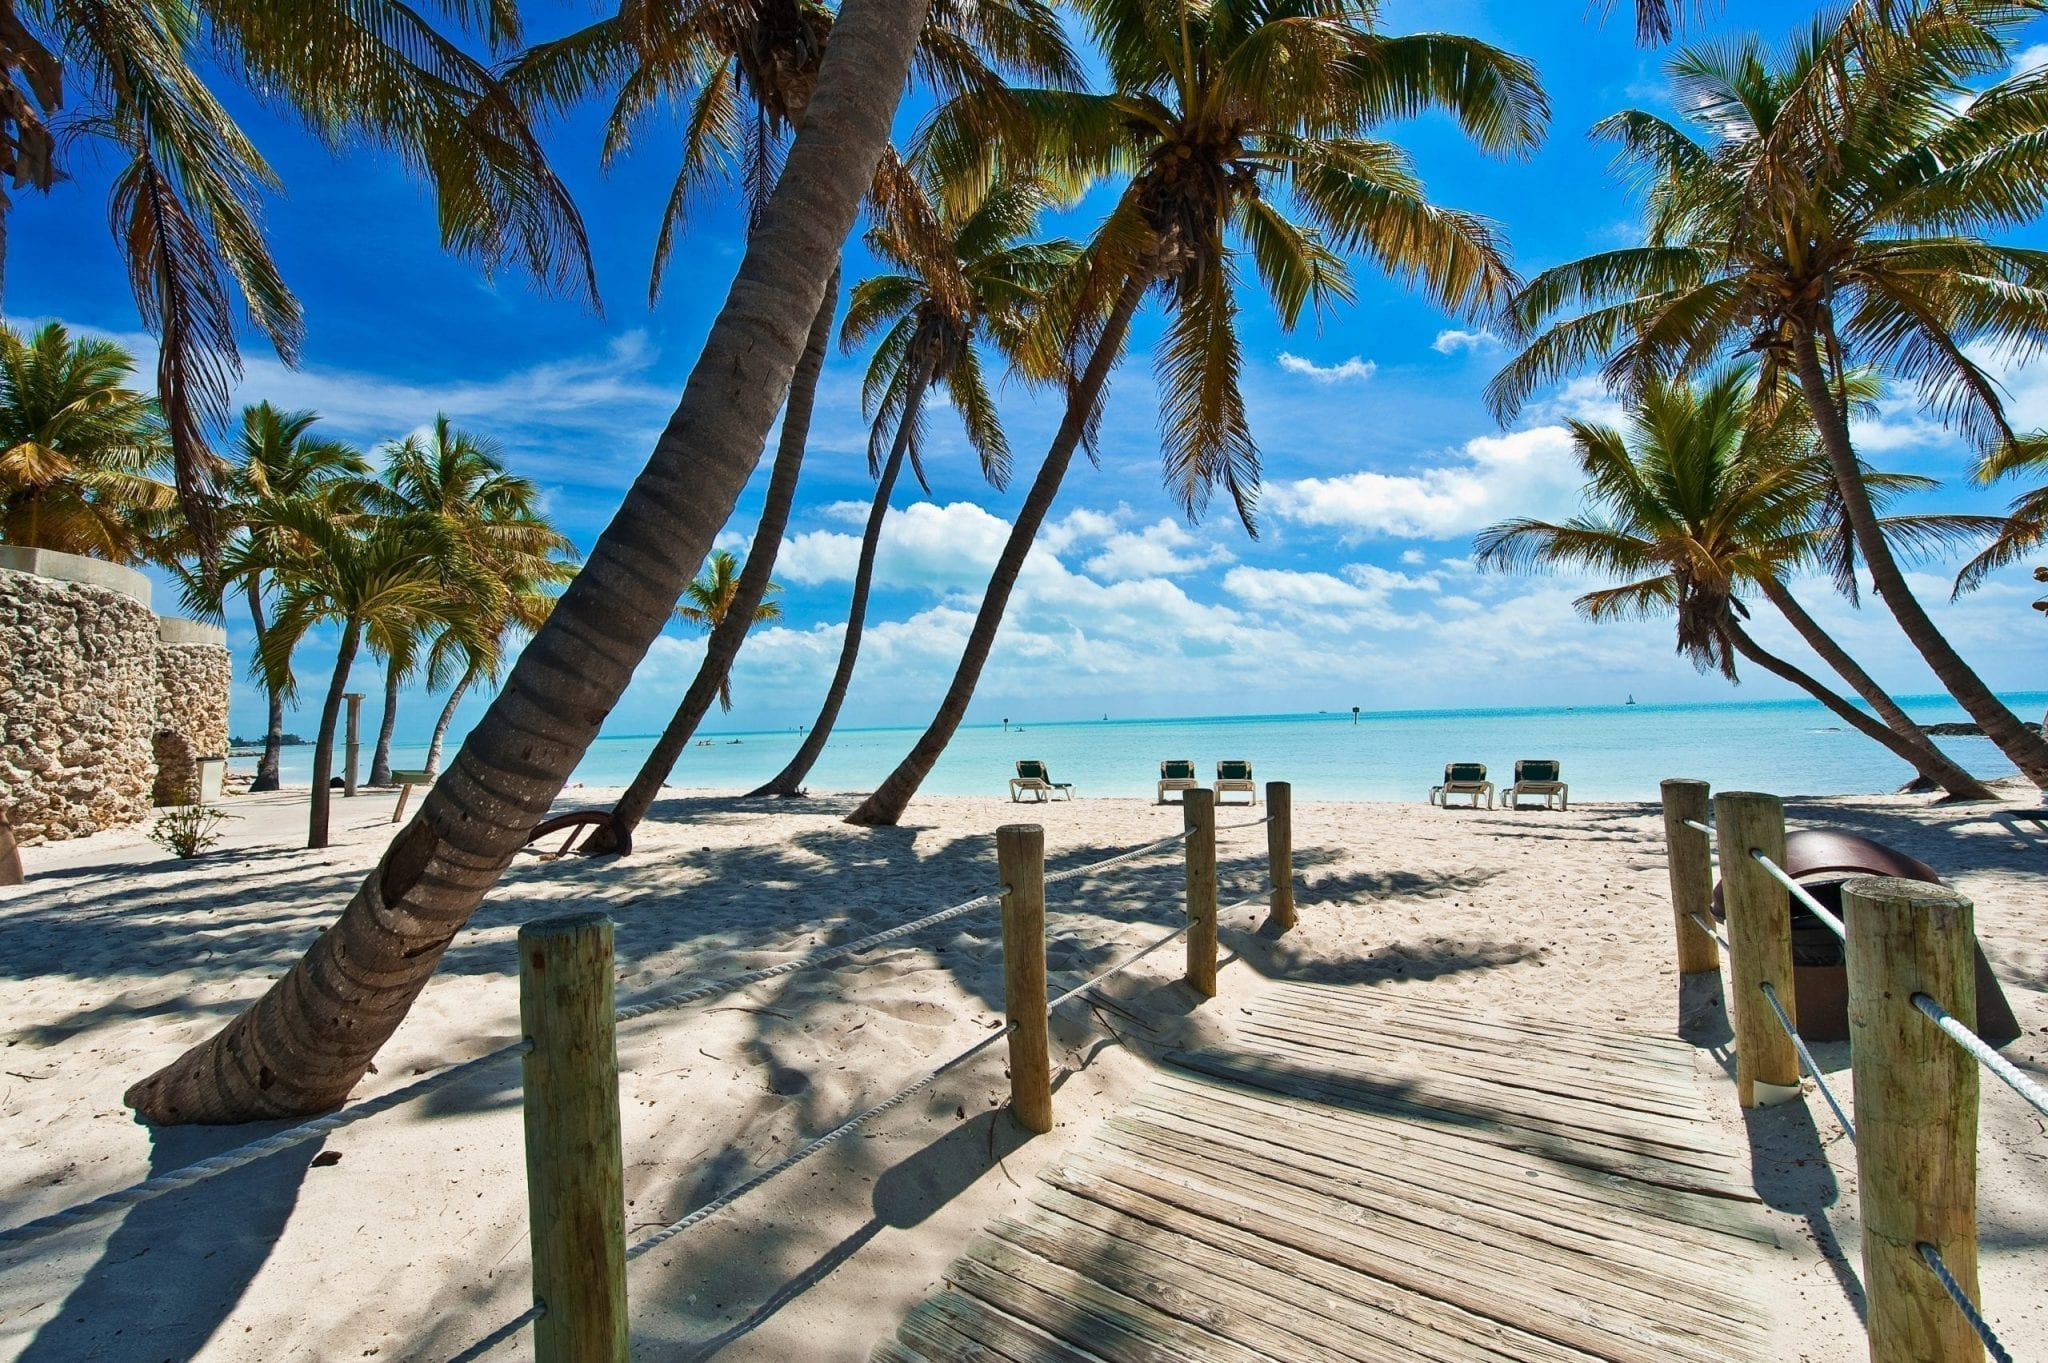 Palm-tree lined path leading to Caribbean Sea beach in Key West Florida, one of the best southern weekend getaways